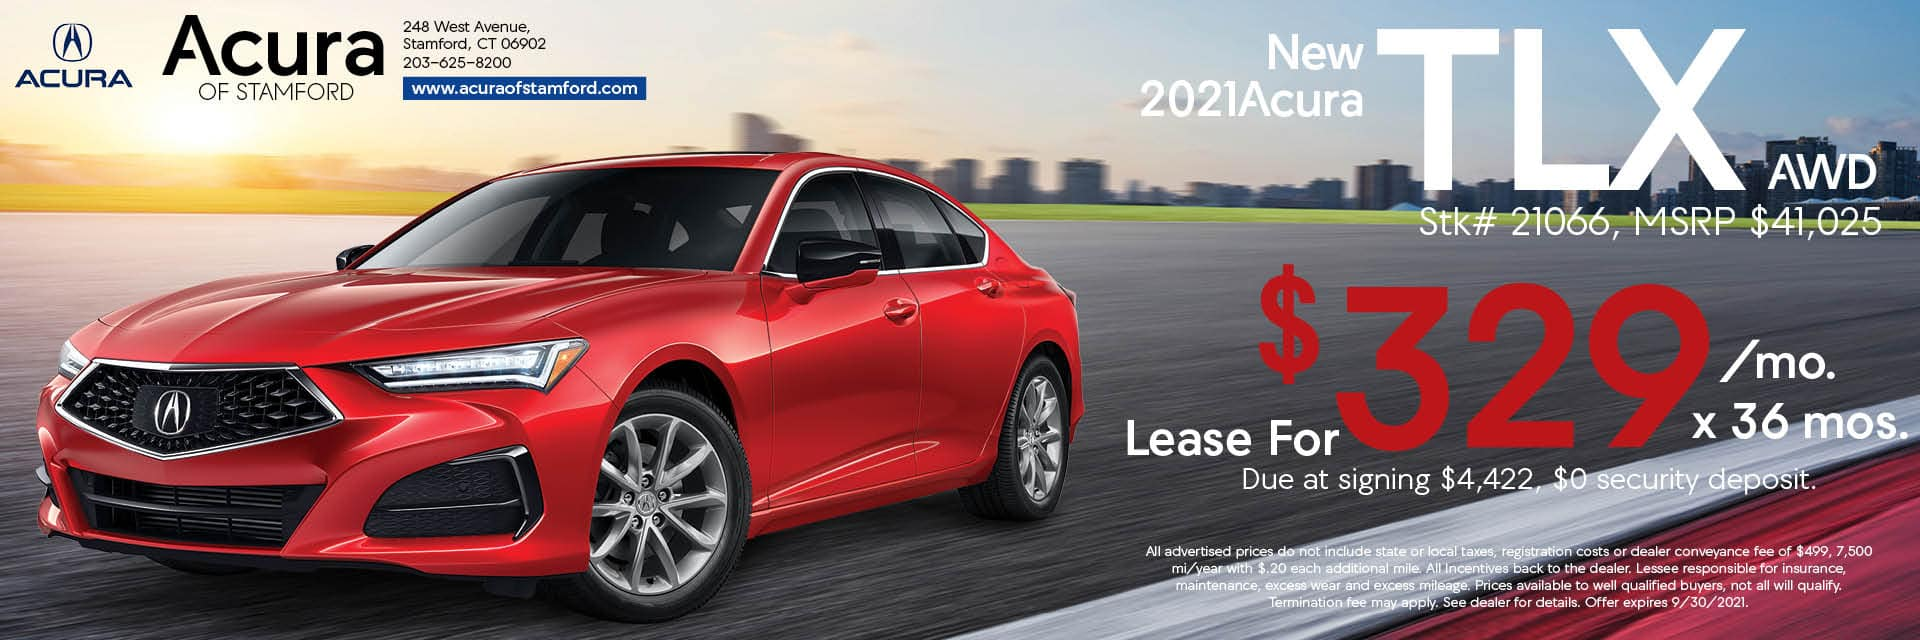 2021 Acura TLX Lease Offer | Acura of Stamford